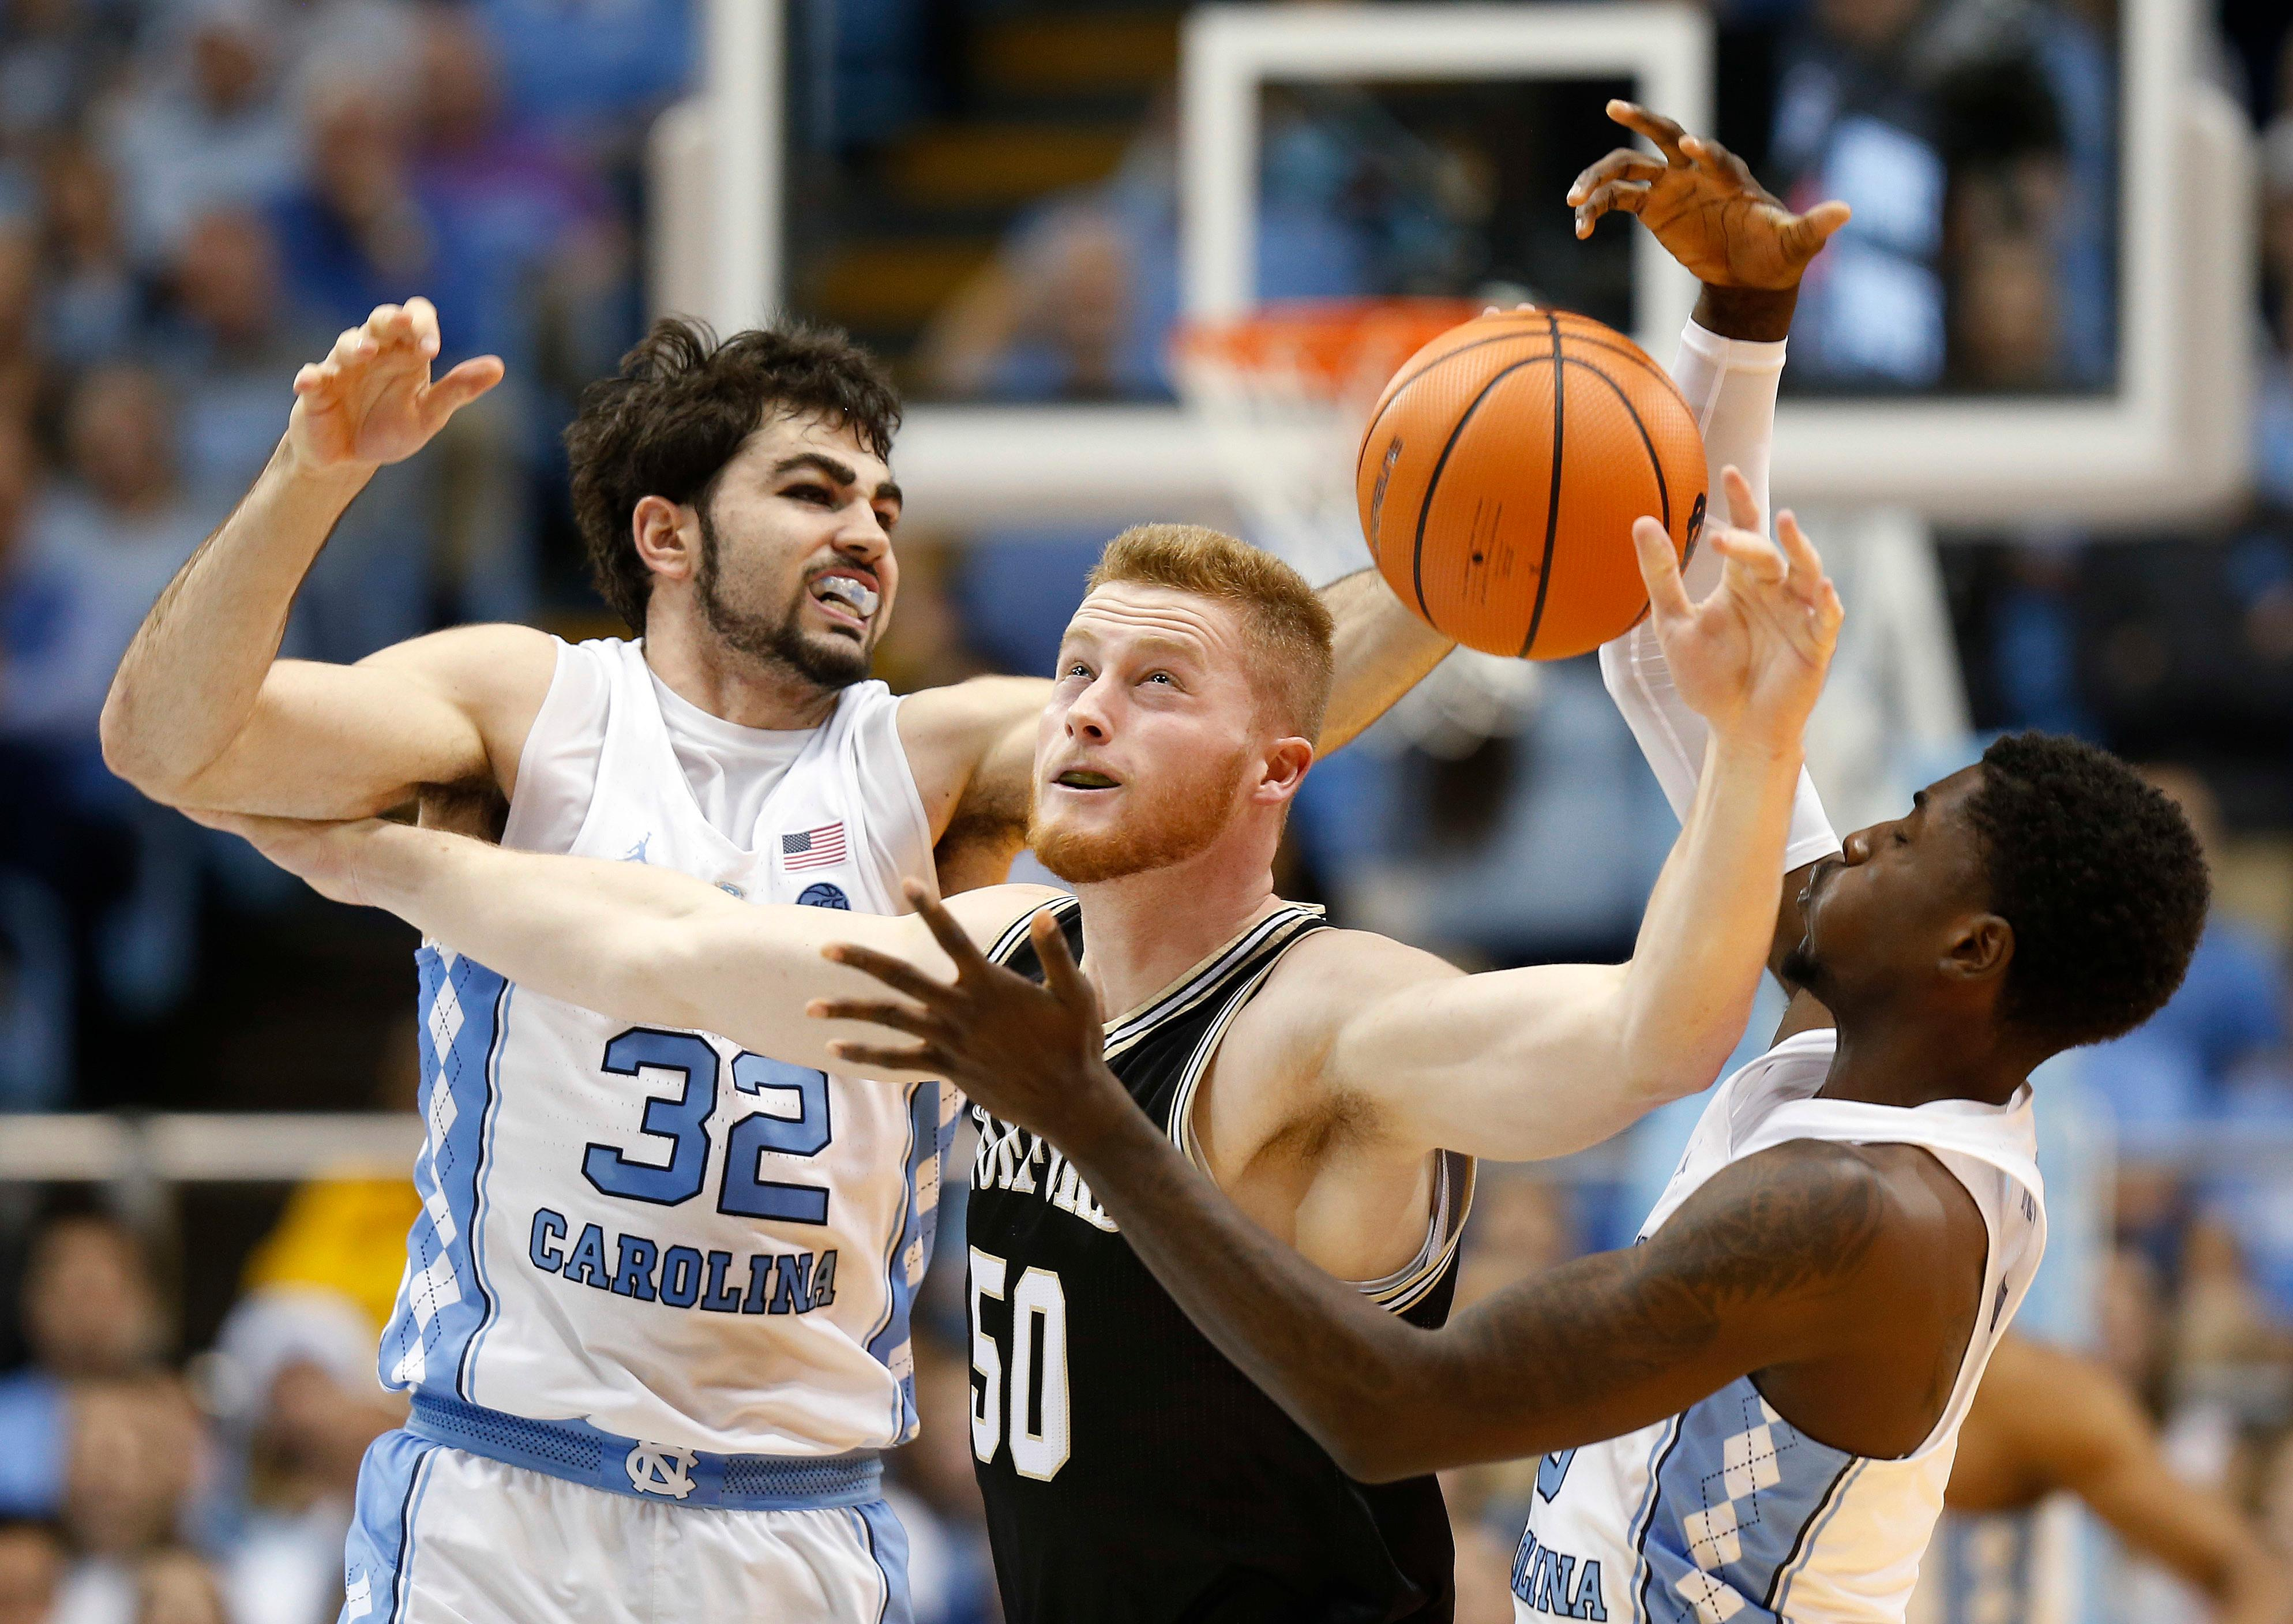 North Carolina forward Luke Maye (32) and teammate North Carolina guard Jalek Felton (5) battle Wofford center Matthew Pegram for a loose ball during the first half of an NCAA college basketball game in Chapel Hill, N.C., Wednesday, Dec. 20, 2017. (AP Photo/Ellen Ozier)